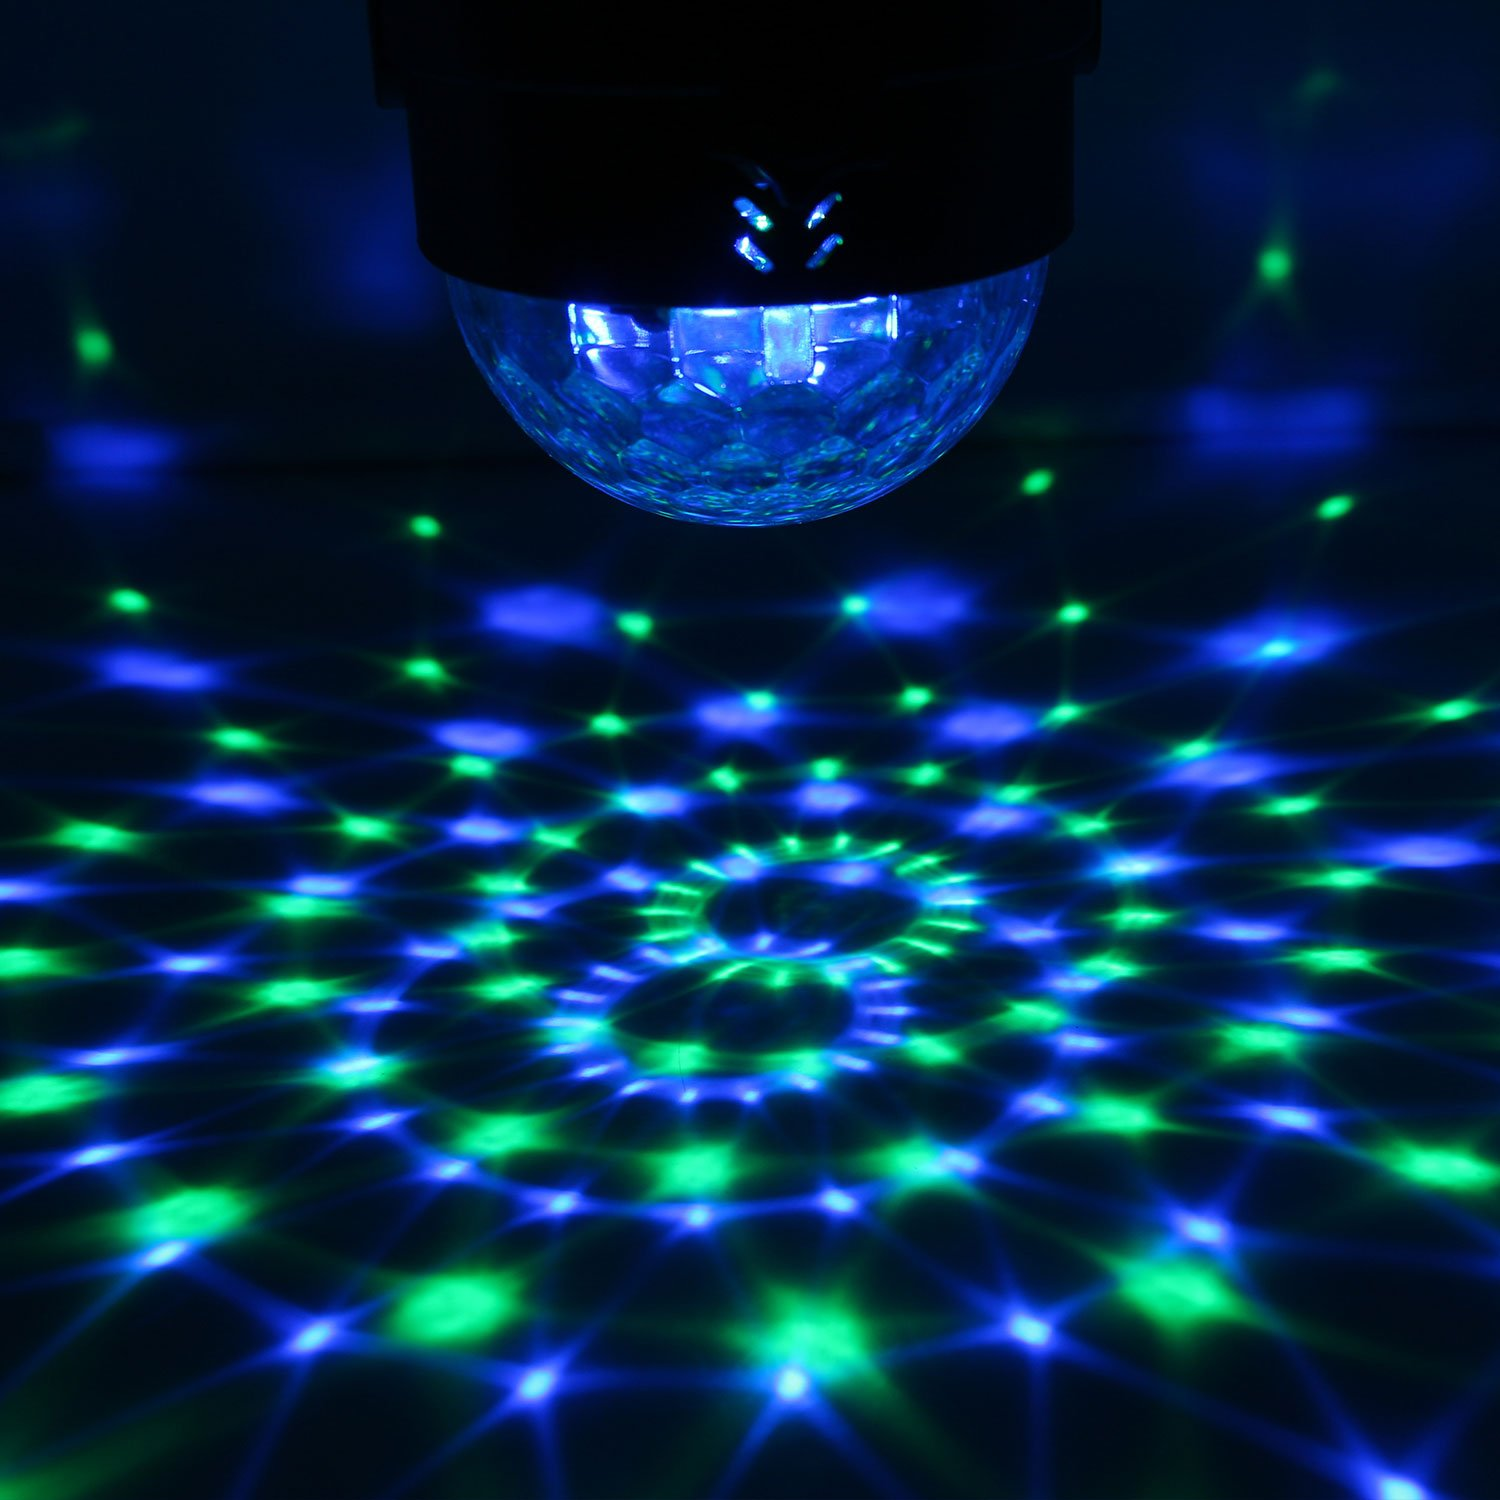 Outdoor Disco Lights Aomees disco ball led party lights strobe light 3w sound activated aomees disco ball led party lights strobe light 3w sound activated dance light stage light dj lights for home xmas halloween kids birthday party decorations workwithnaturefo